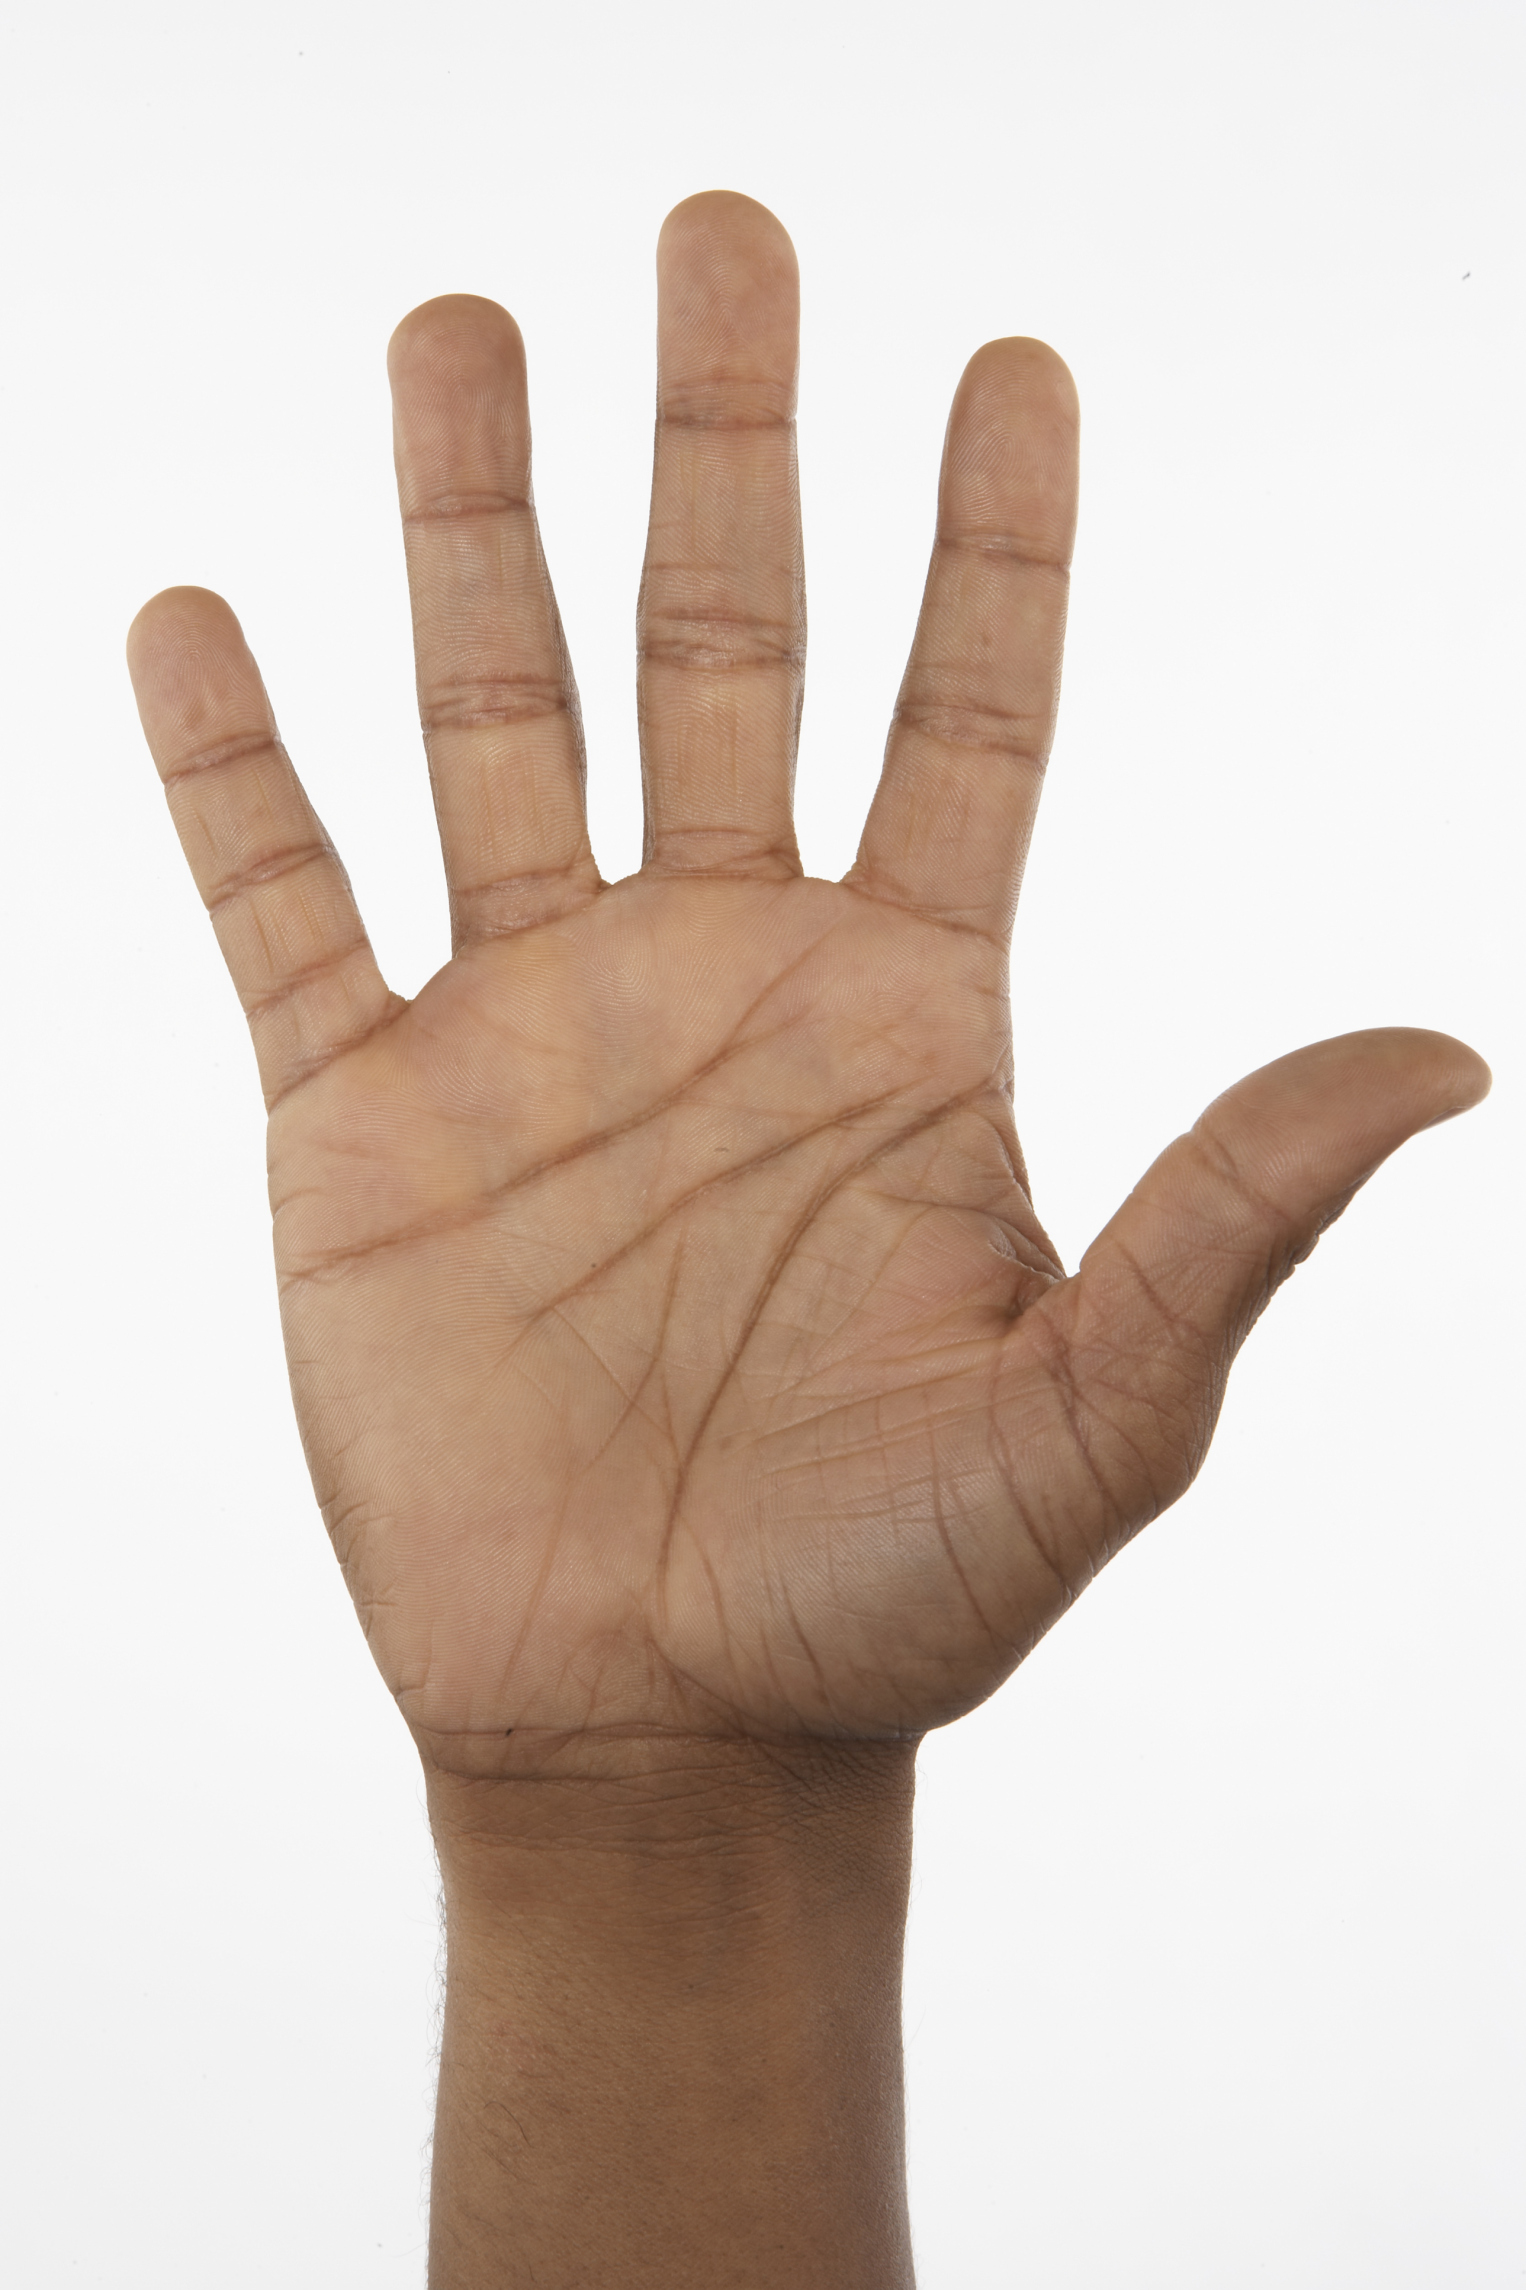 Muscles That Control the Human Hand | LIVESTRONG.COM